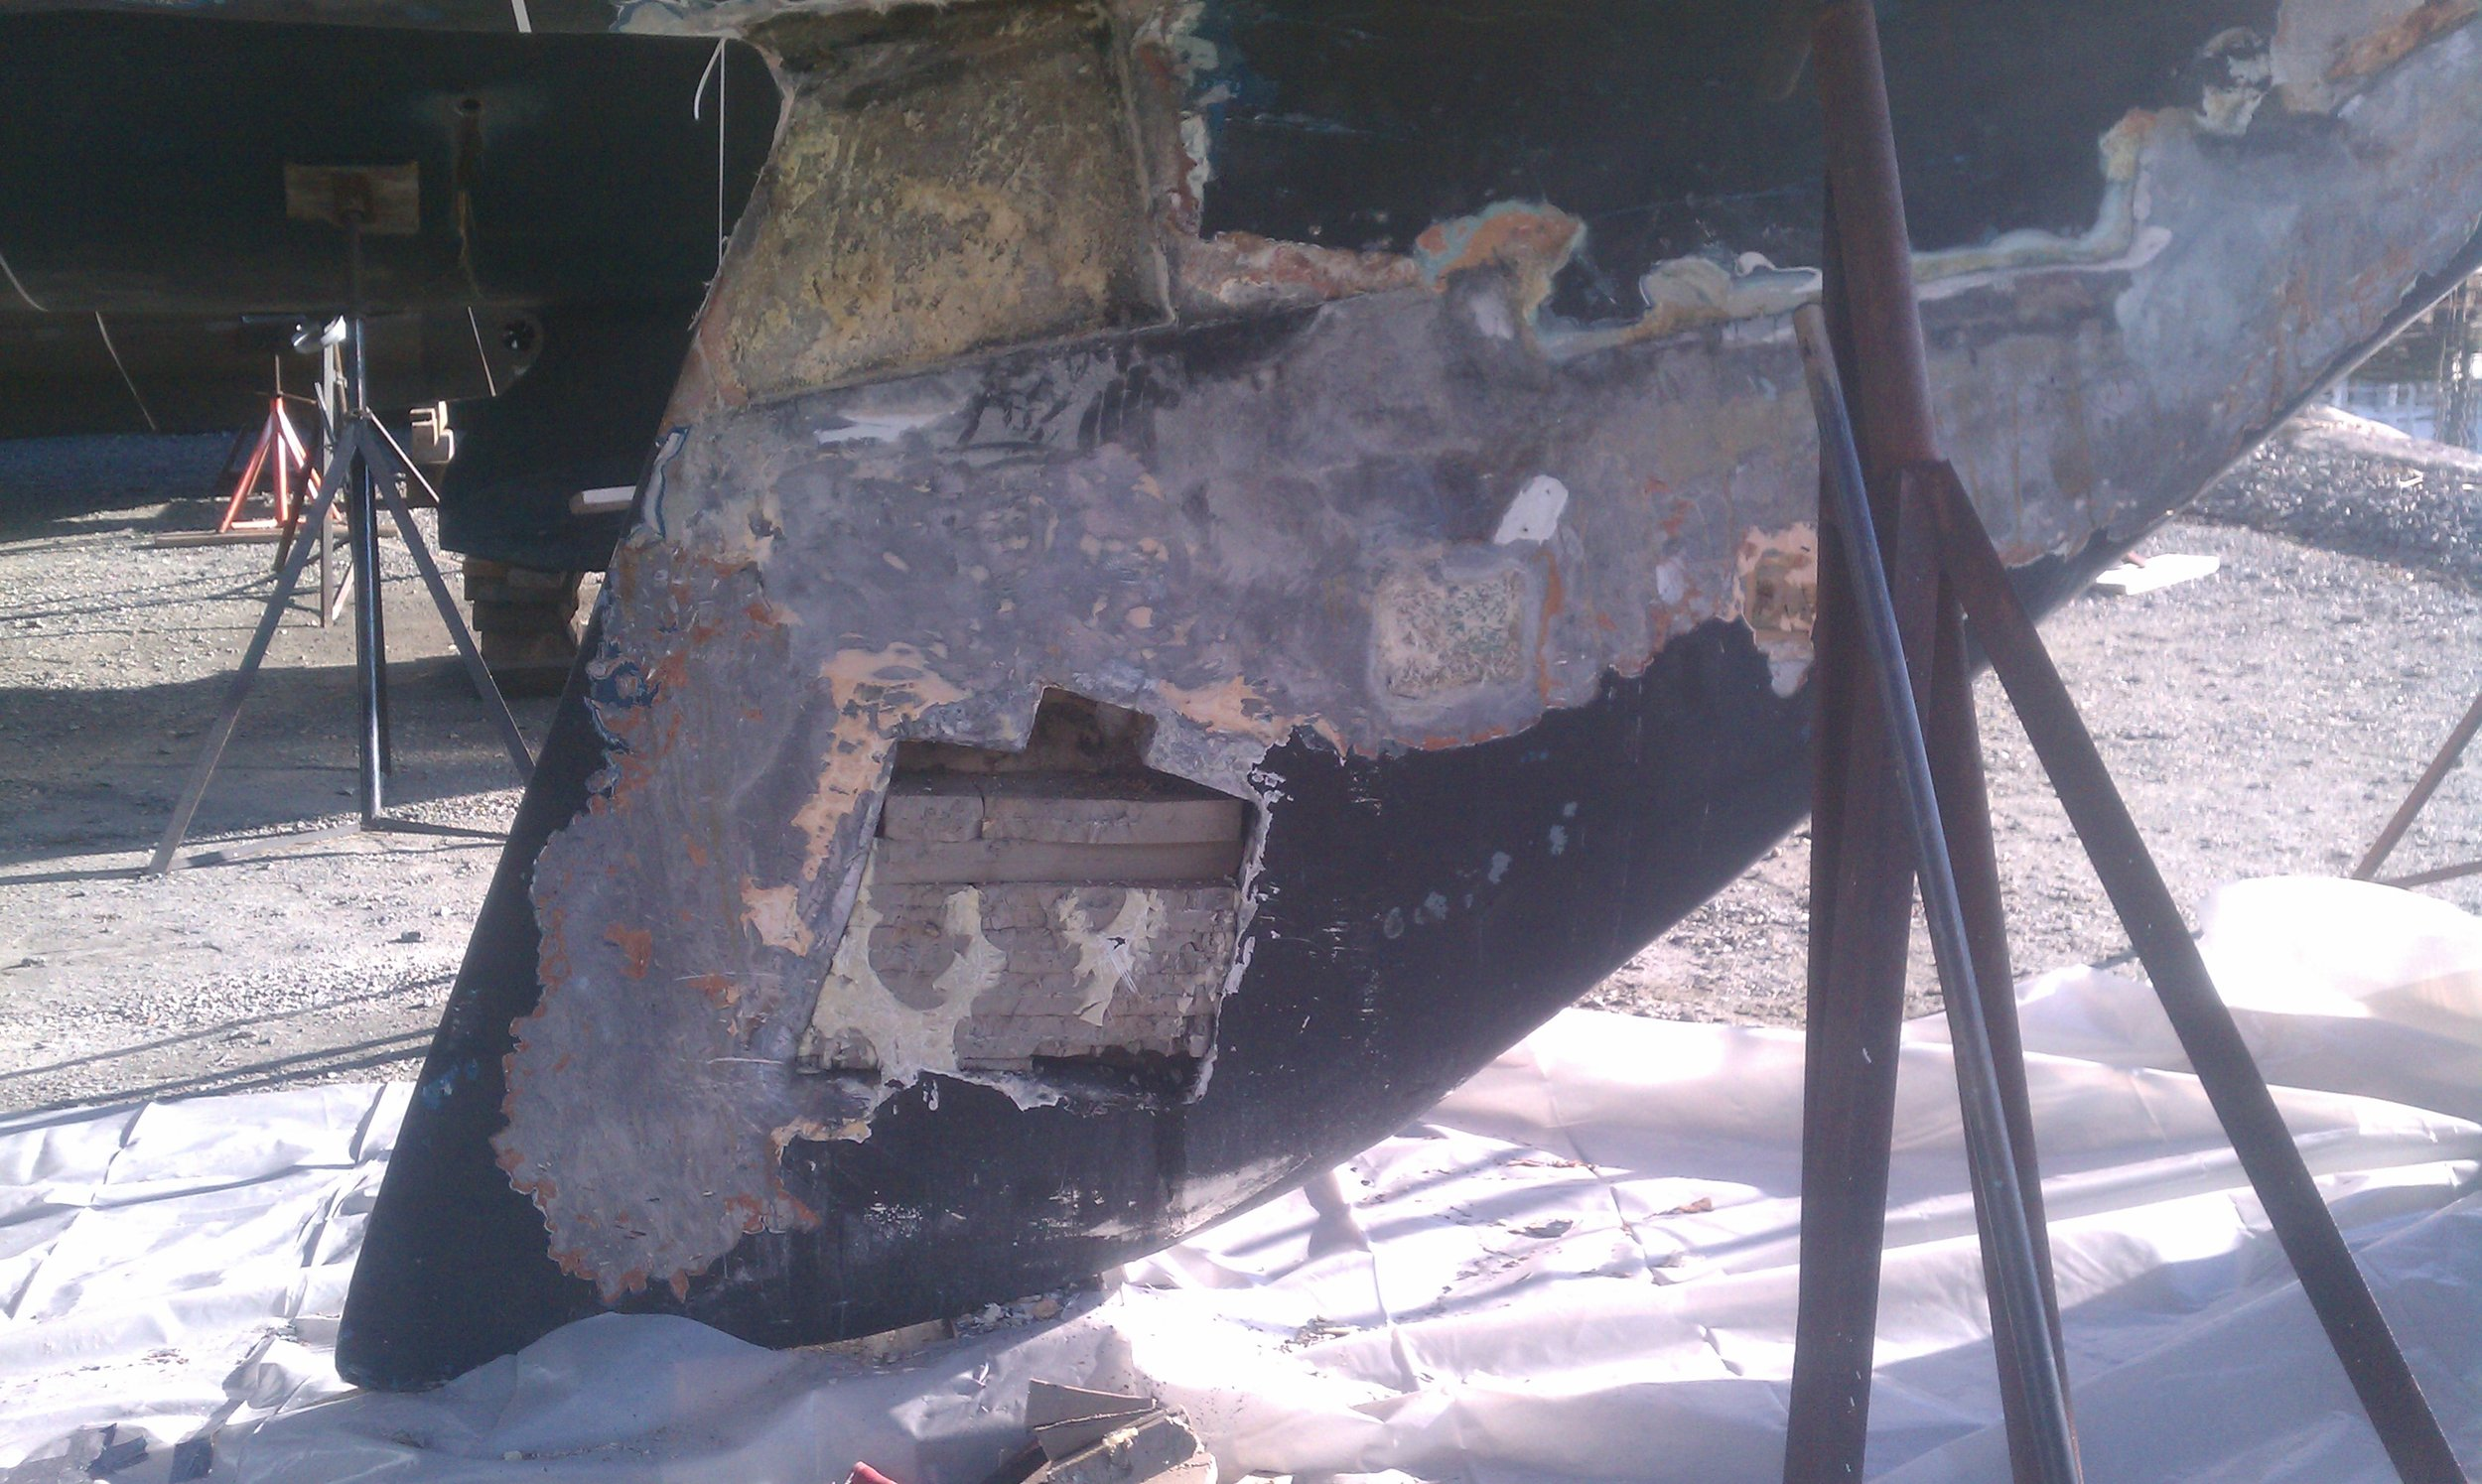 Further investigation revealed the keel was changed at some point requiring a waterproof repair where the keel bolt needed to be tightened vs a grid system embedded in the lead from the factory.